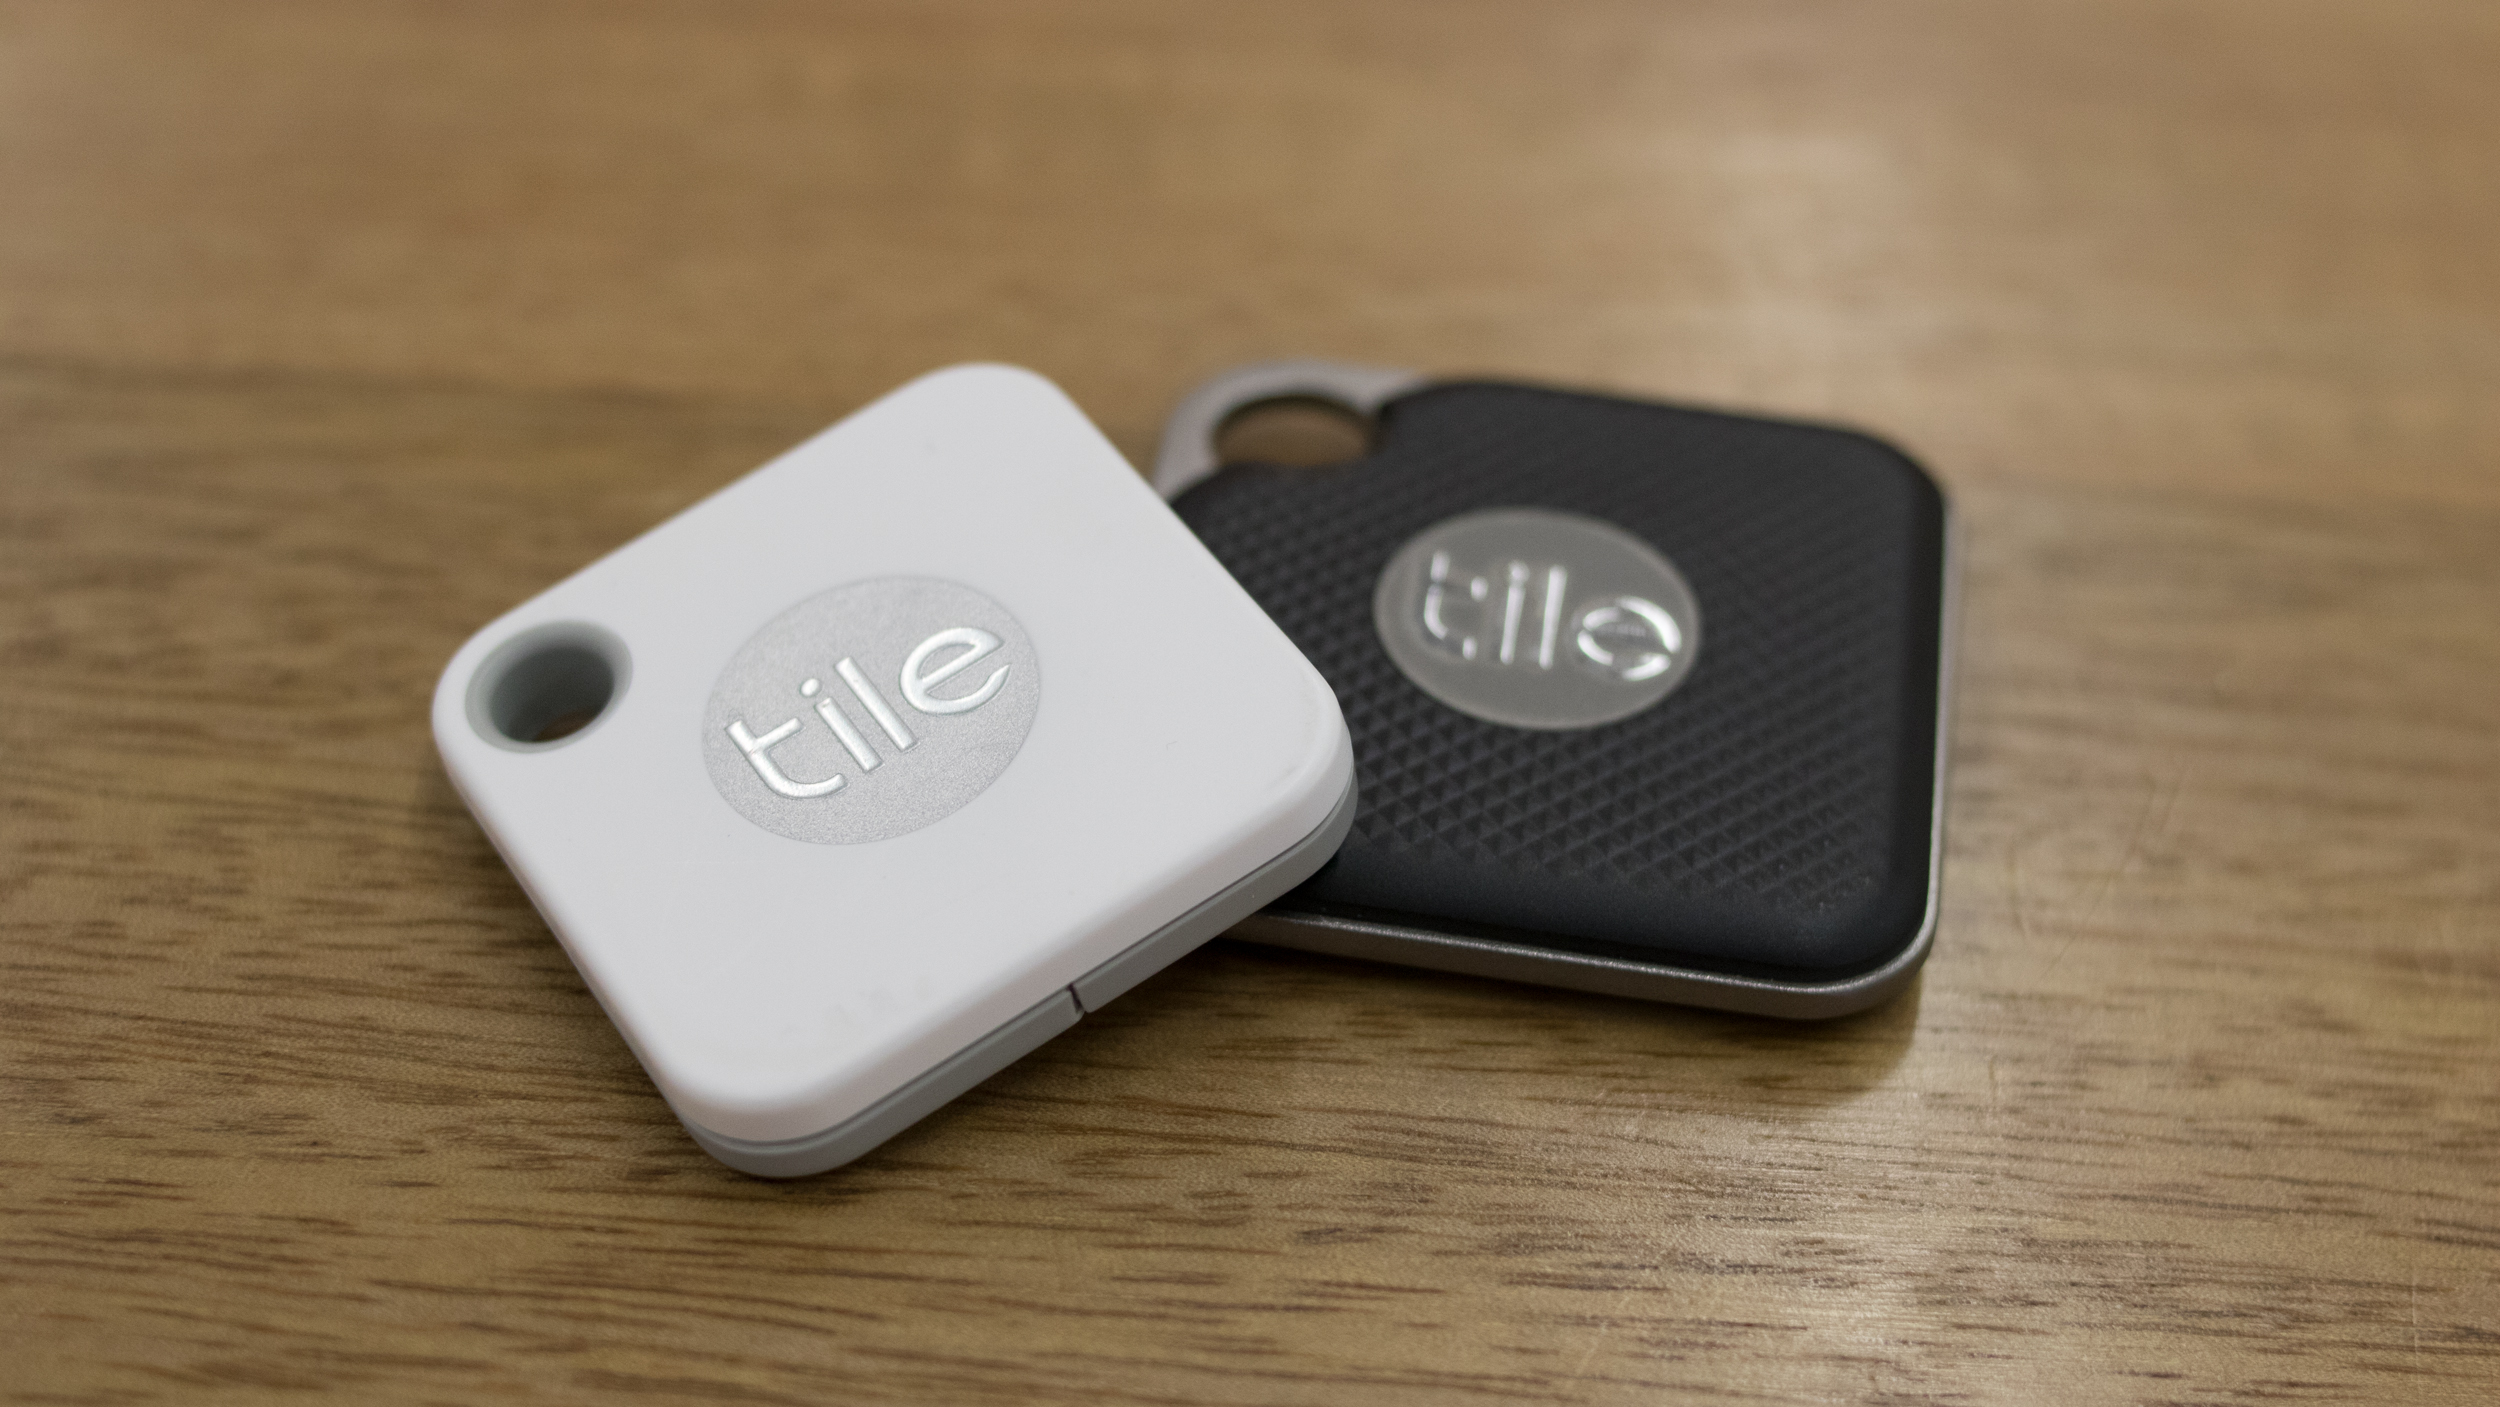 Tile Mate and Tile Pro 2018 review: Removable battery is a ...